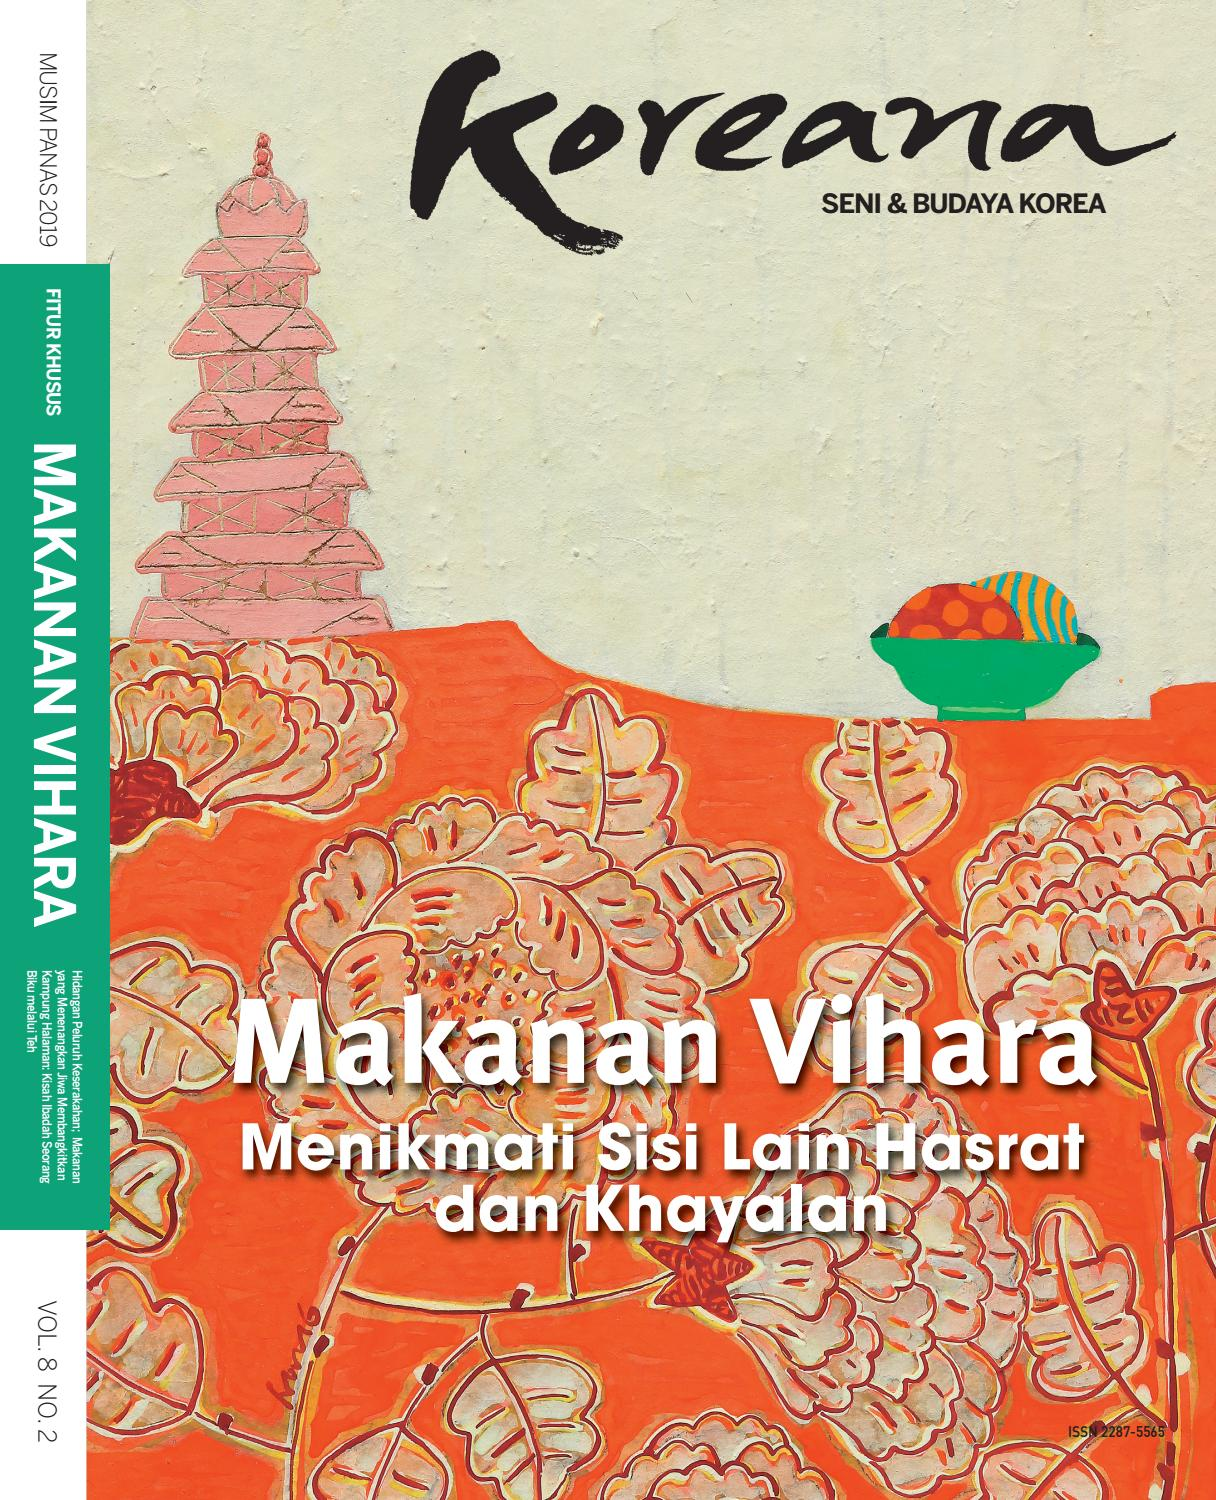 2019 Koreana Summer Indonesian By The Korea Foundation Issuu